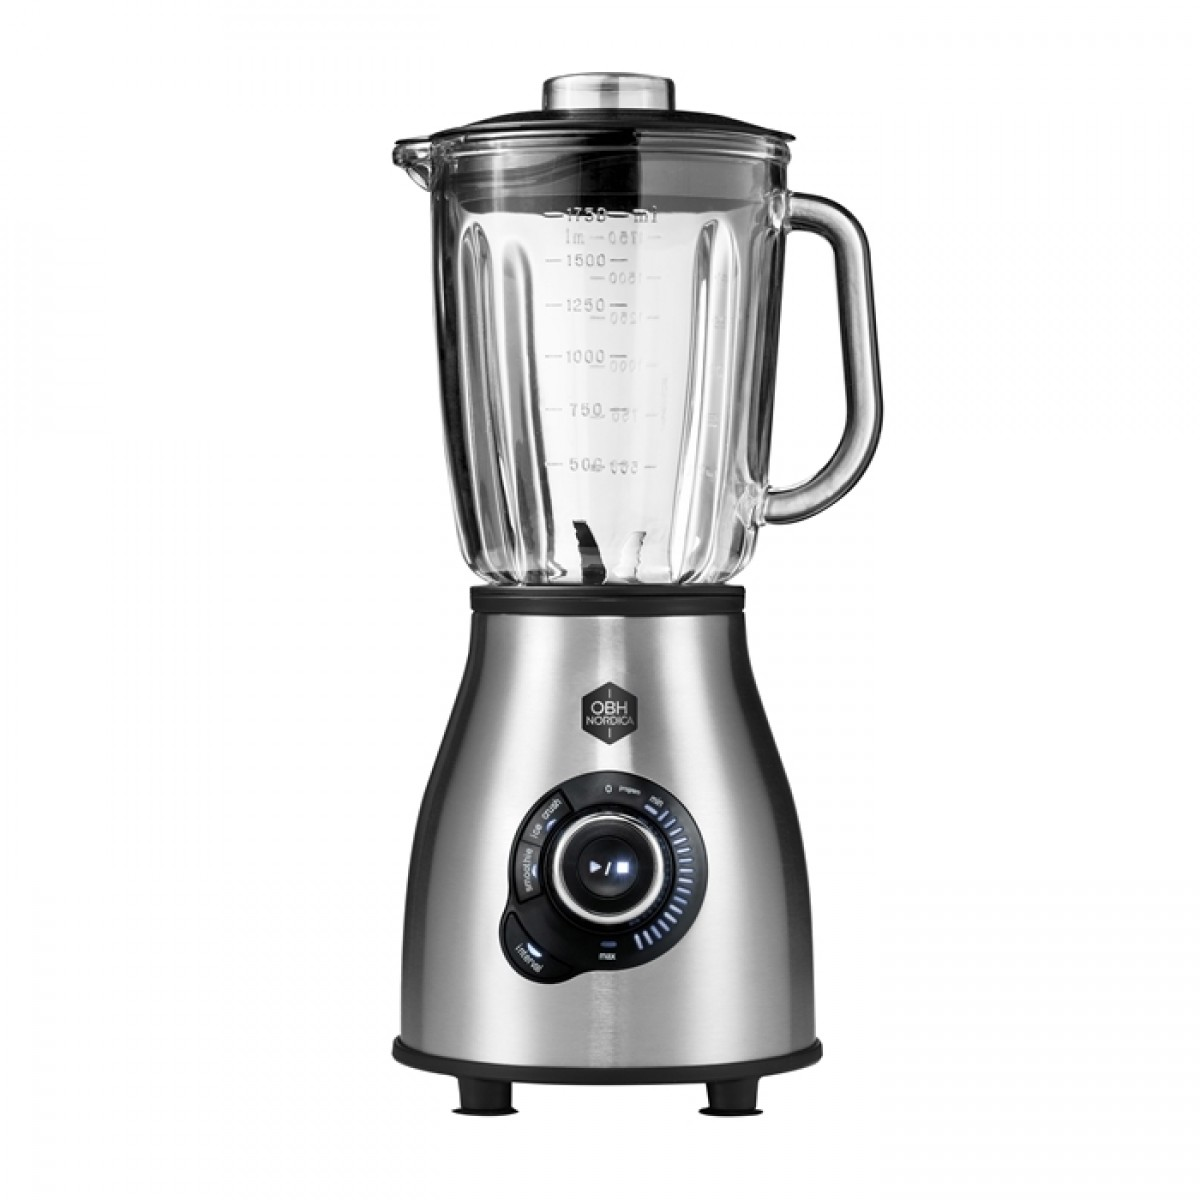 OBH NORDICA Blender hero 1400 watt